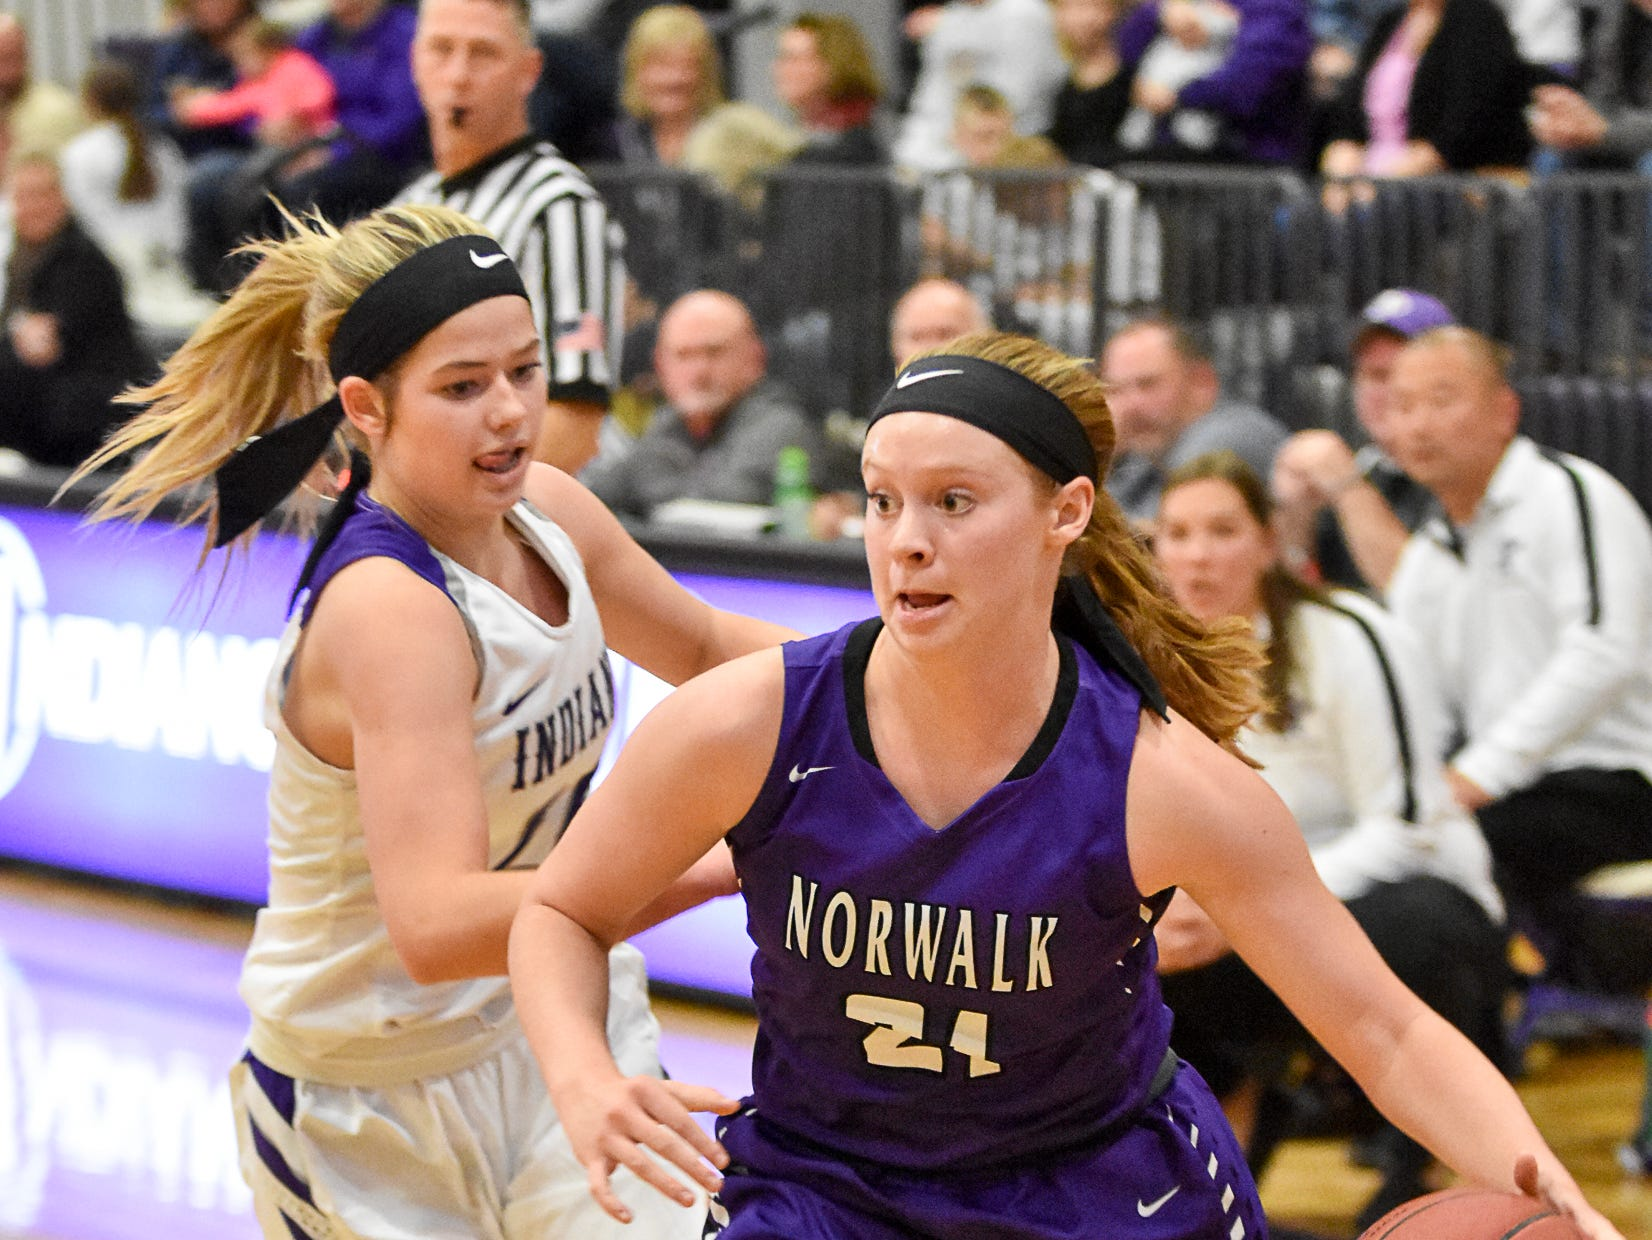 Gianna Bellizzi, of Norwalk High, drives toward the basket. The Indianola girls' basketball team picked up their first win of the season with a 57-34 home victory over Norwalk on Nov. 30, 2018.